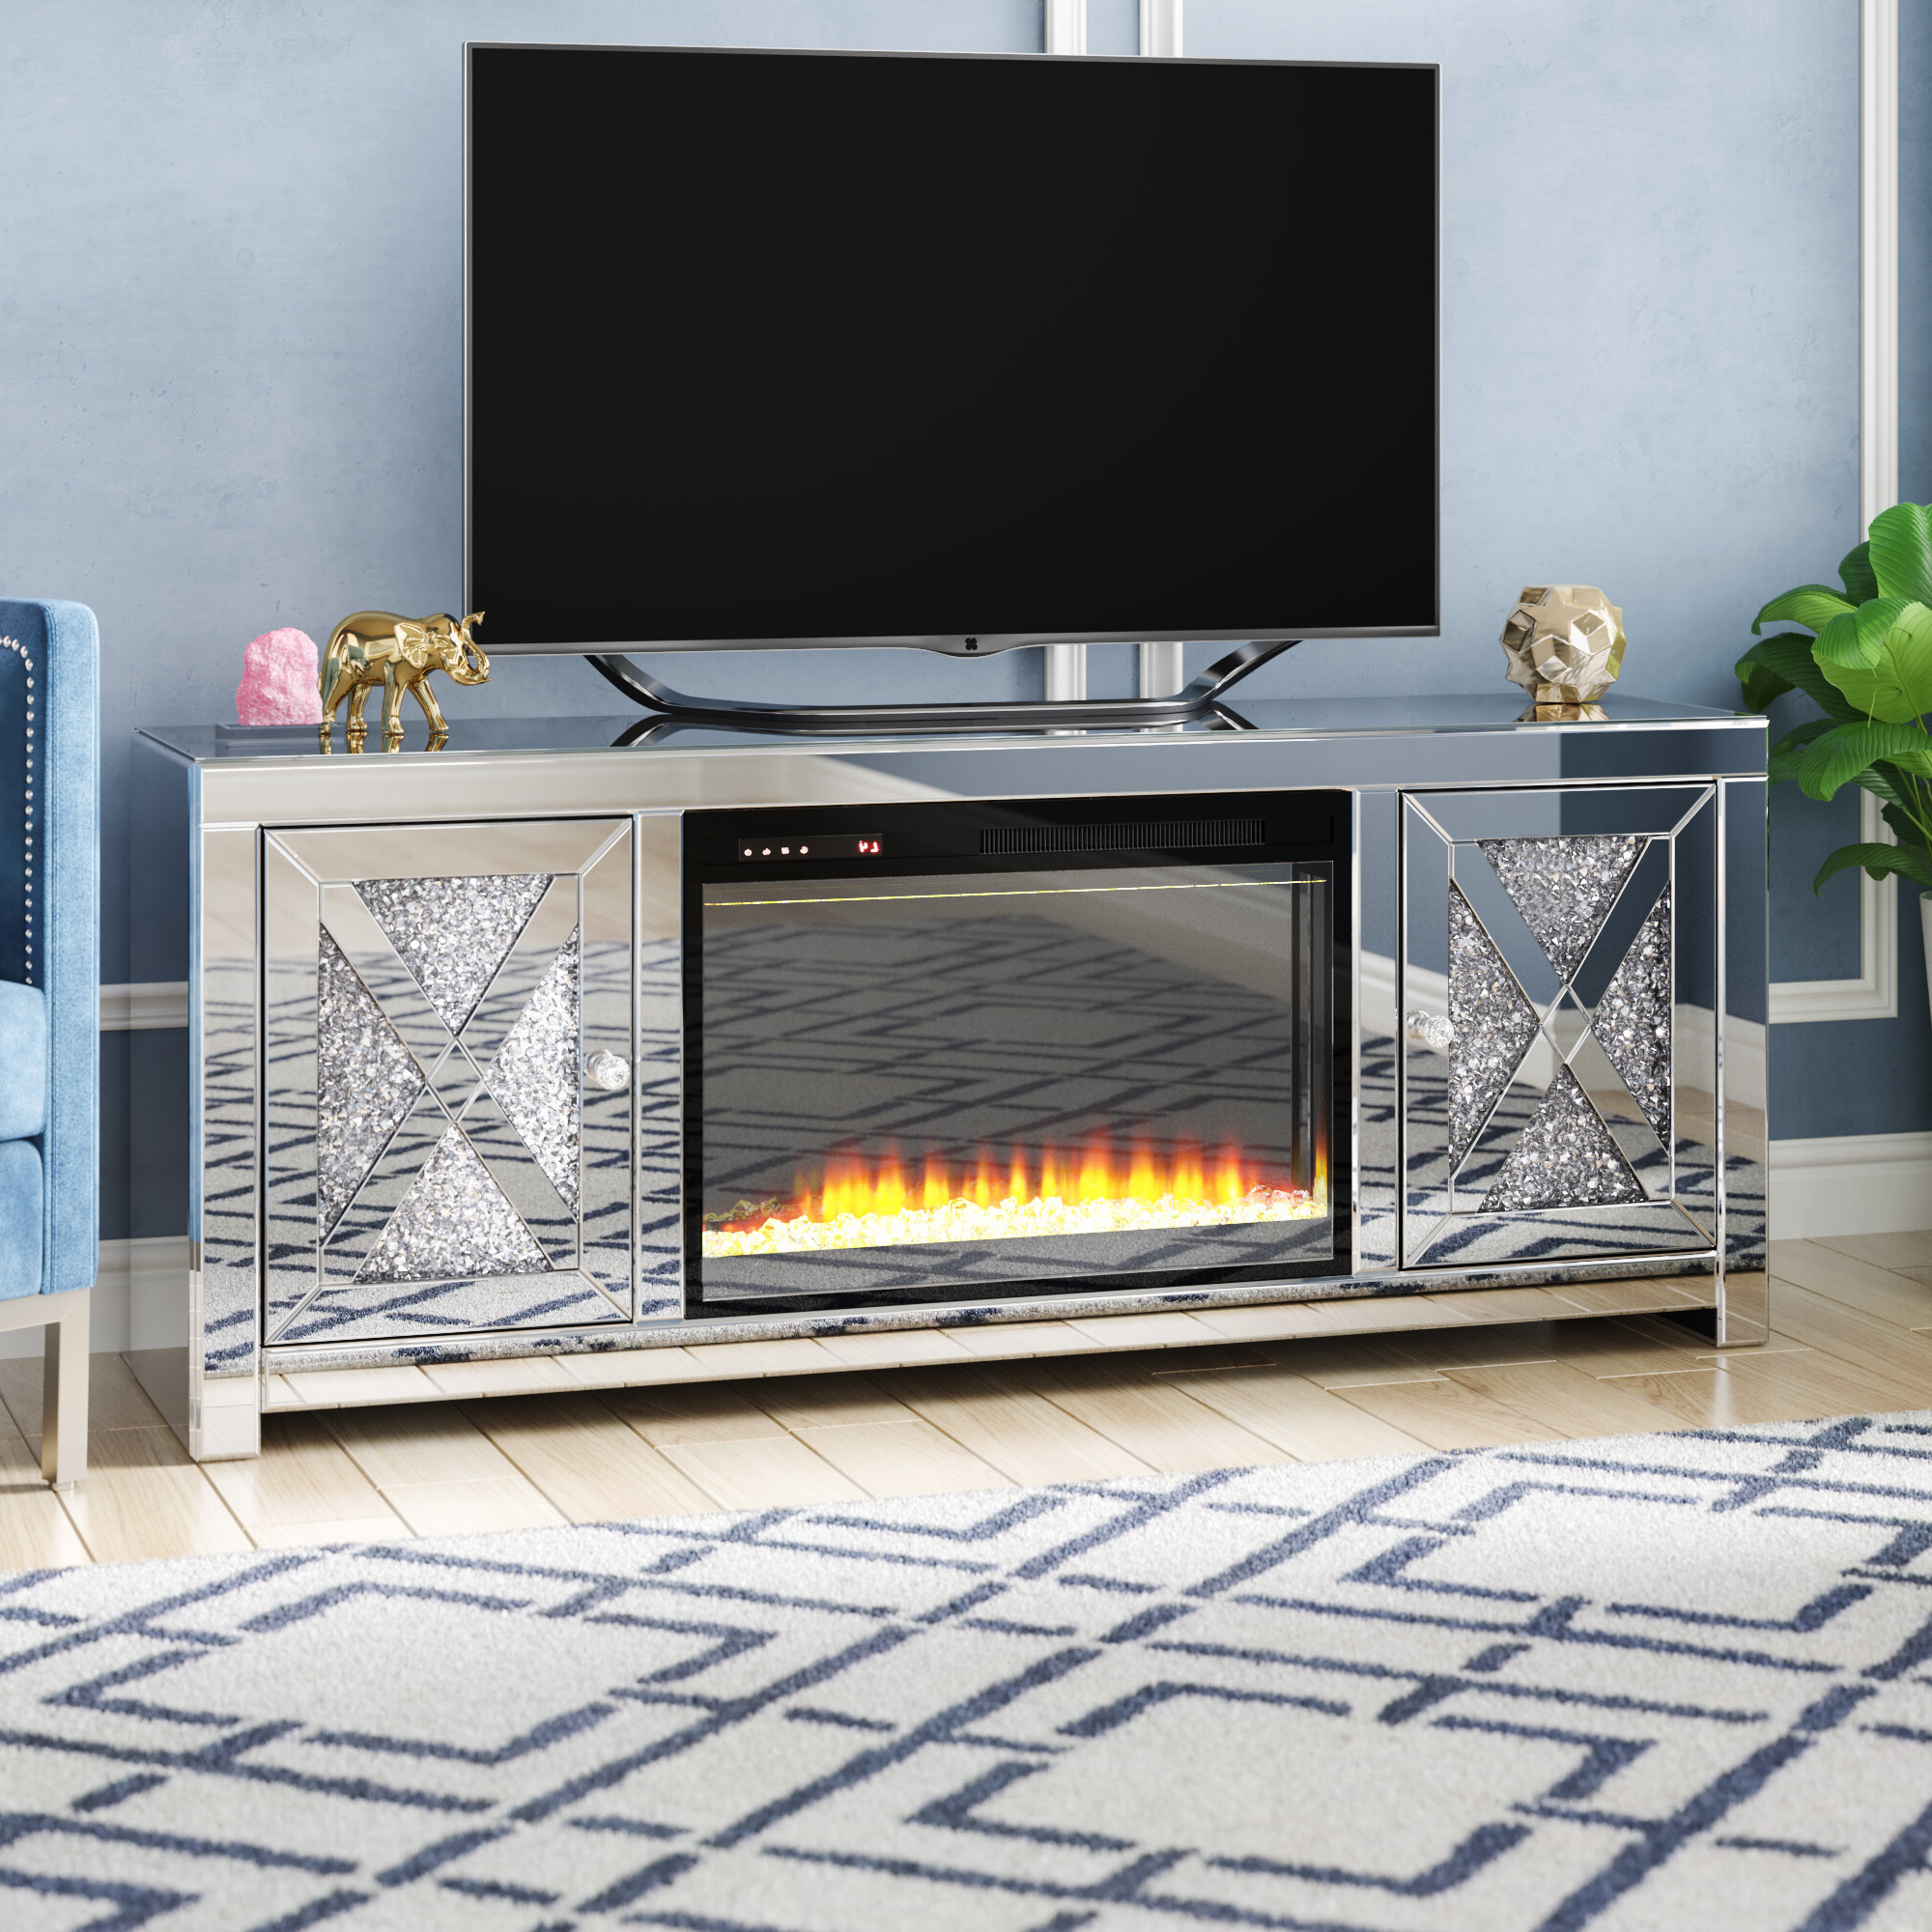 """Most Up To Date Tv Stands For Tvs Up To 65"""" Within 65 Inch Tv Stand With Fireplace – Ideas On Foter (View 18 of 22)"""